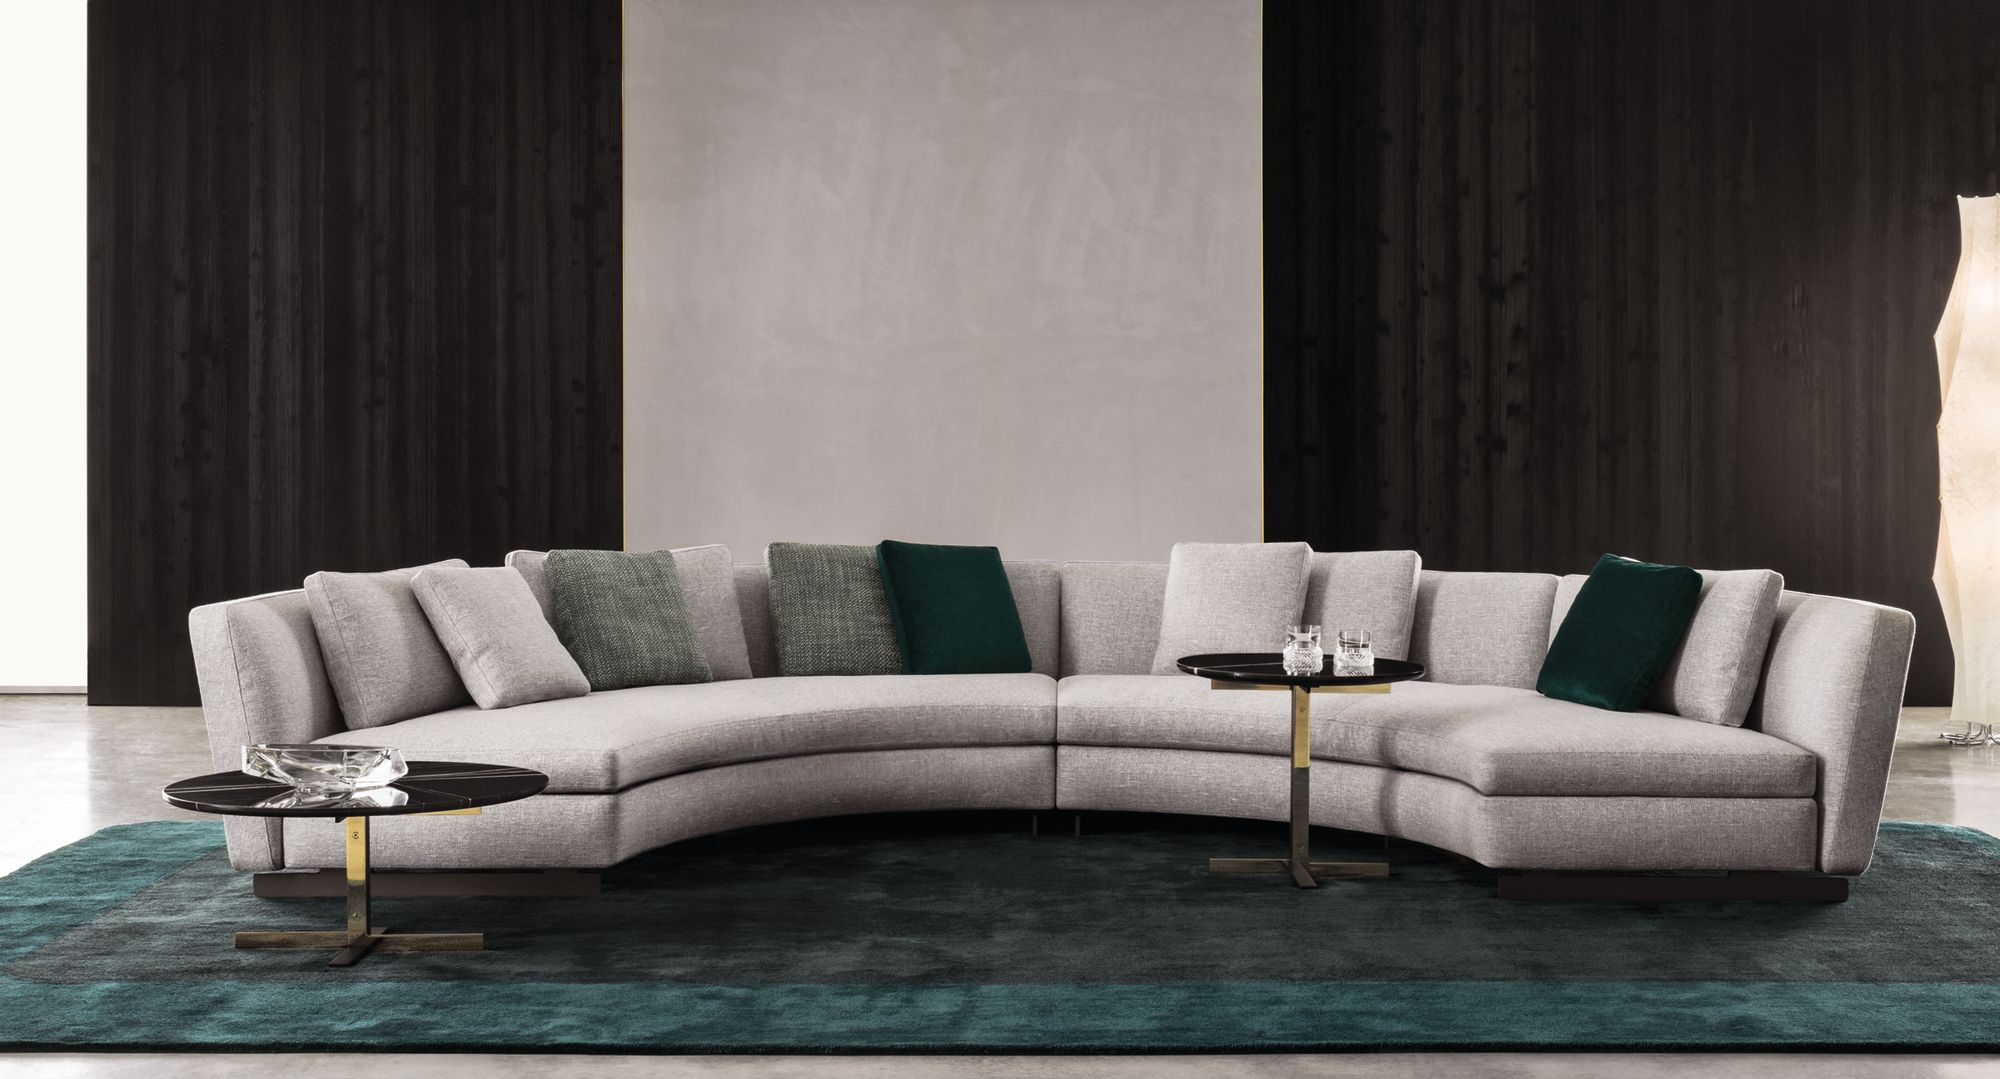 modern round lounge sofa rattan and chair sets upholstered seymour by minotti design rodolfo